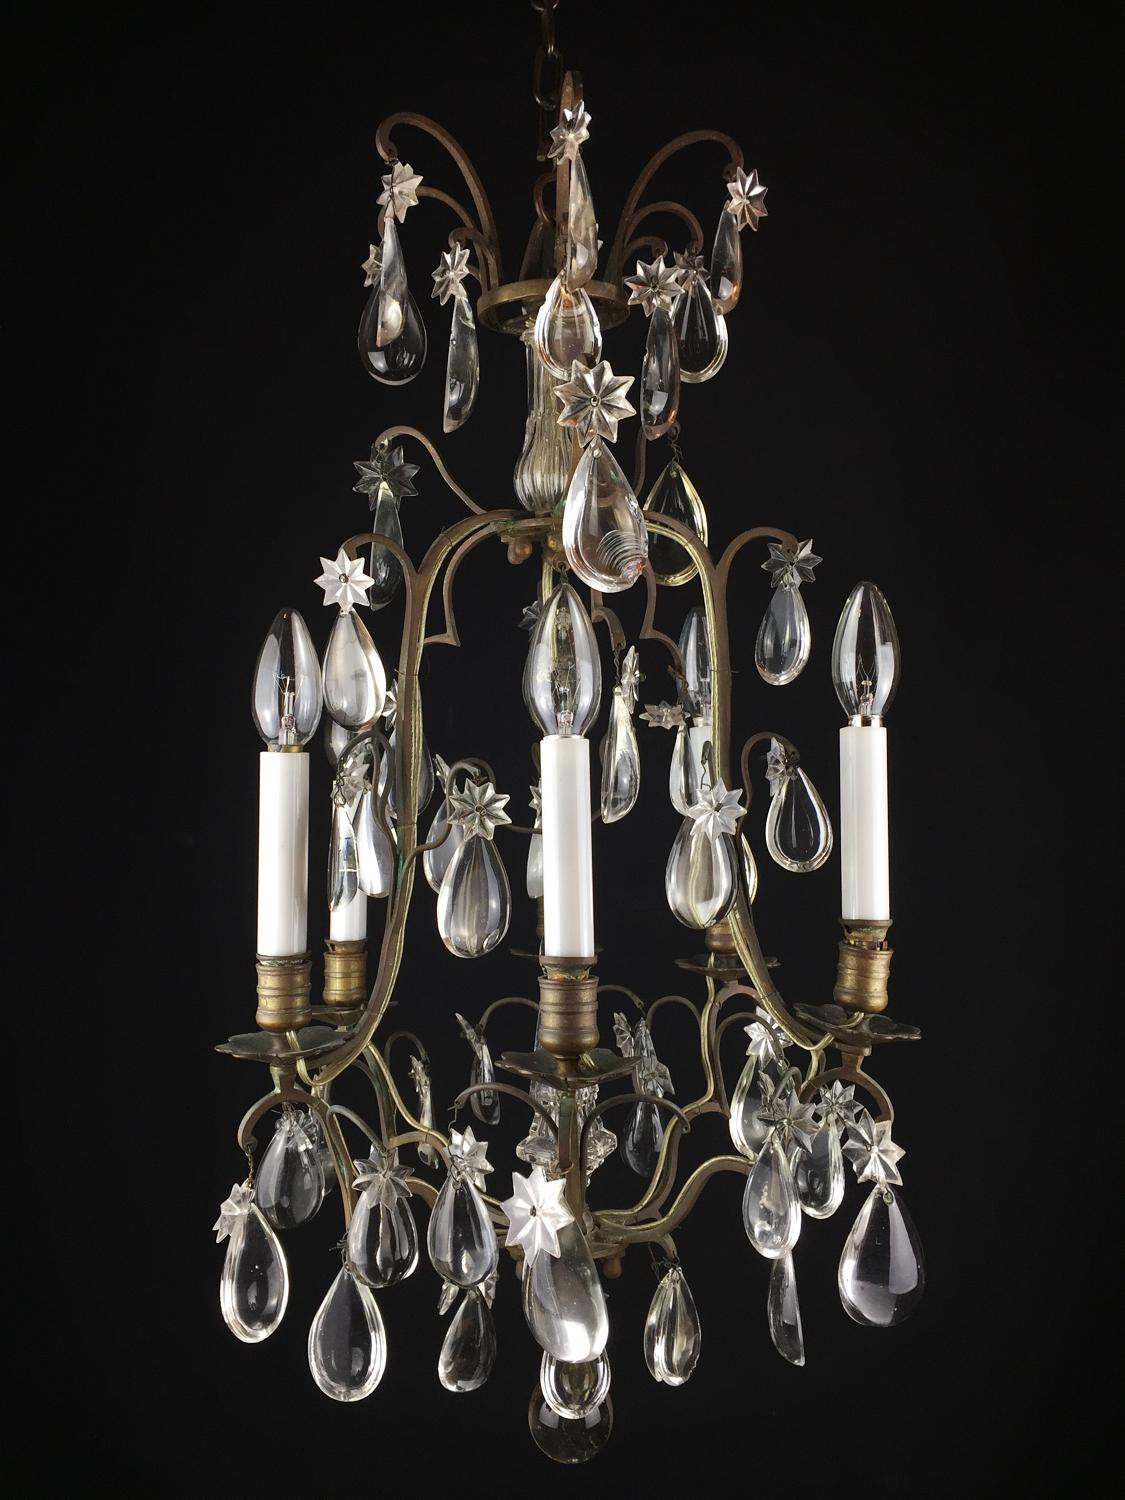 A French six arm bronze chandelier